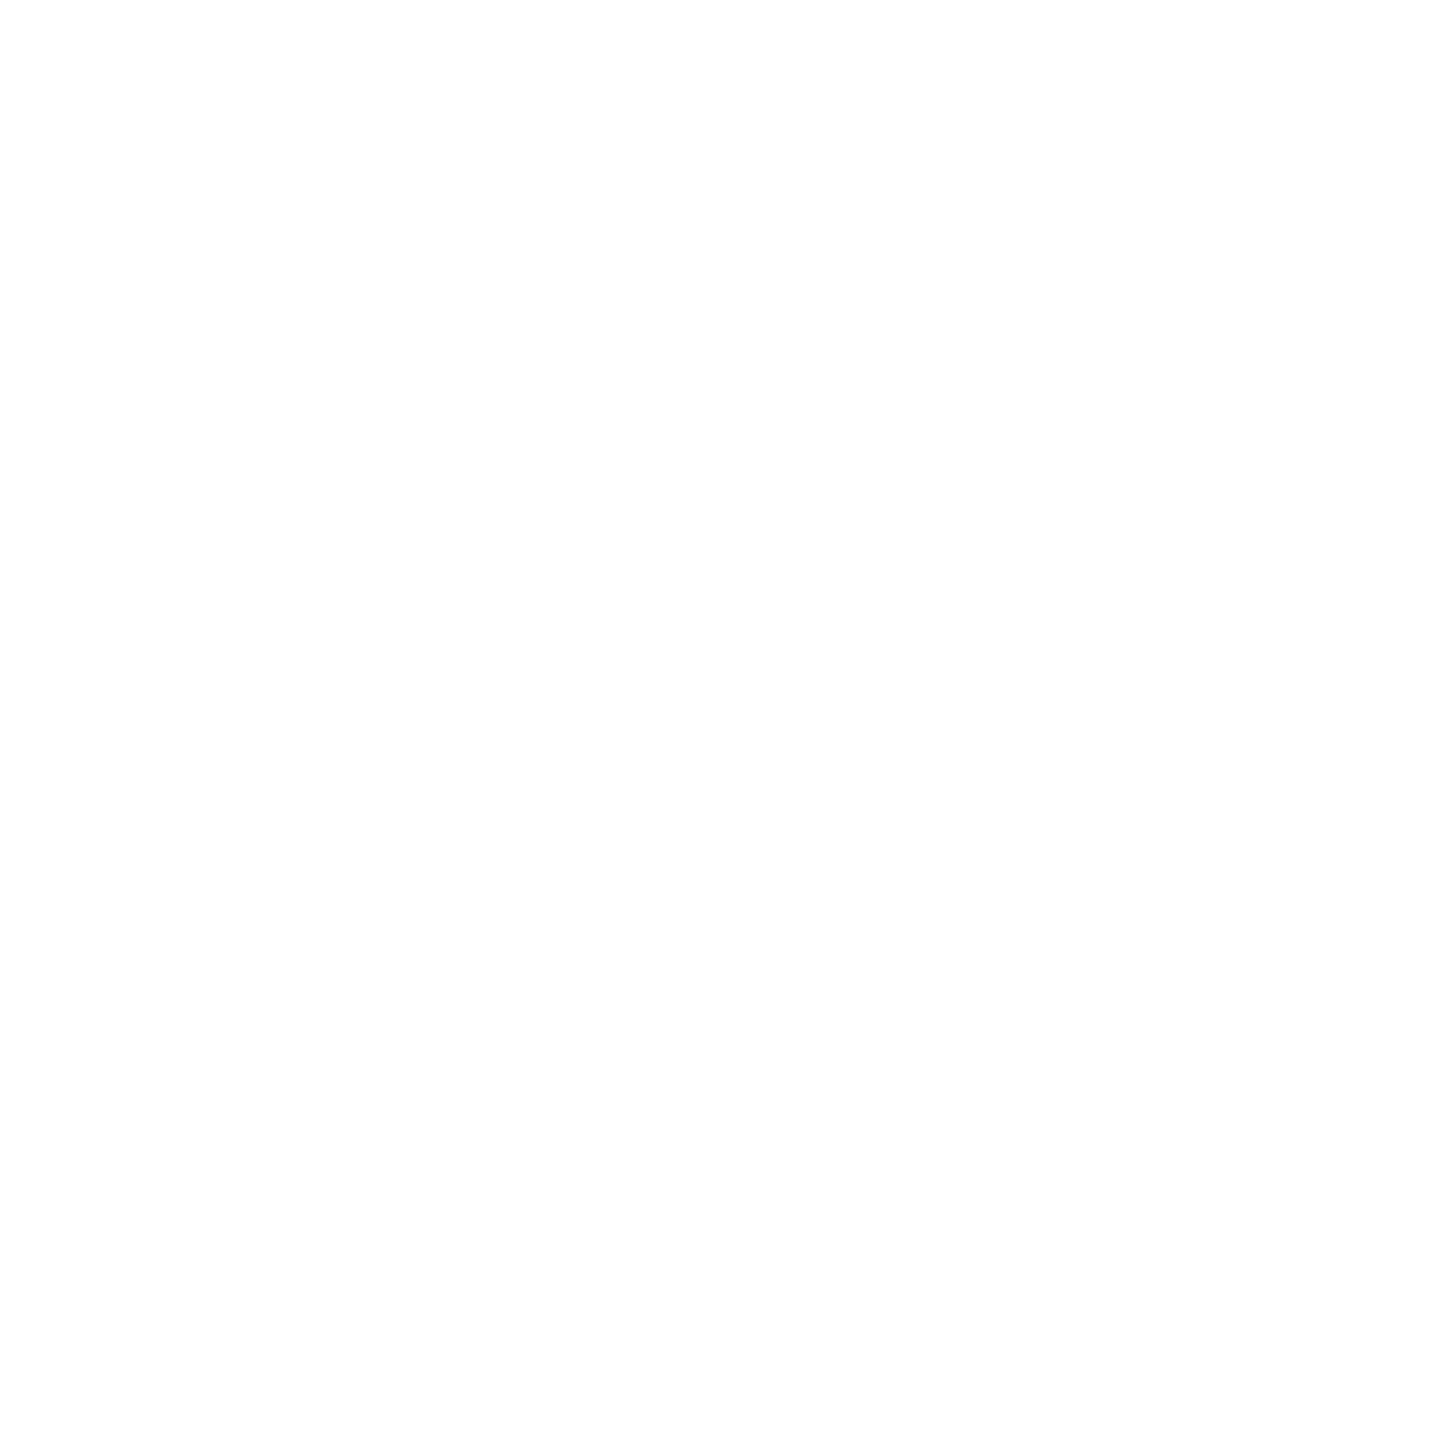 Beats drawing. Low heat latest releases